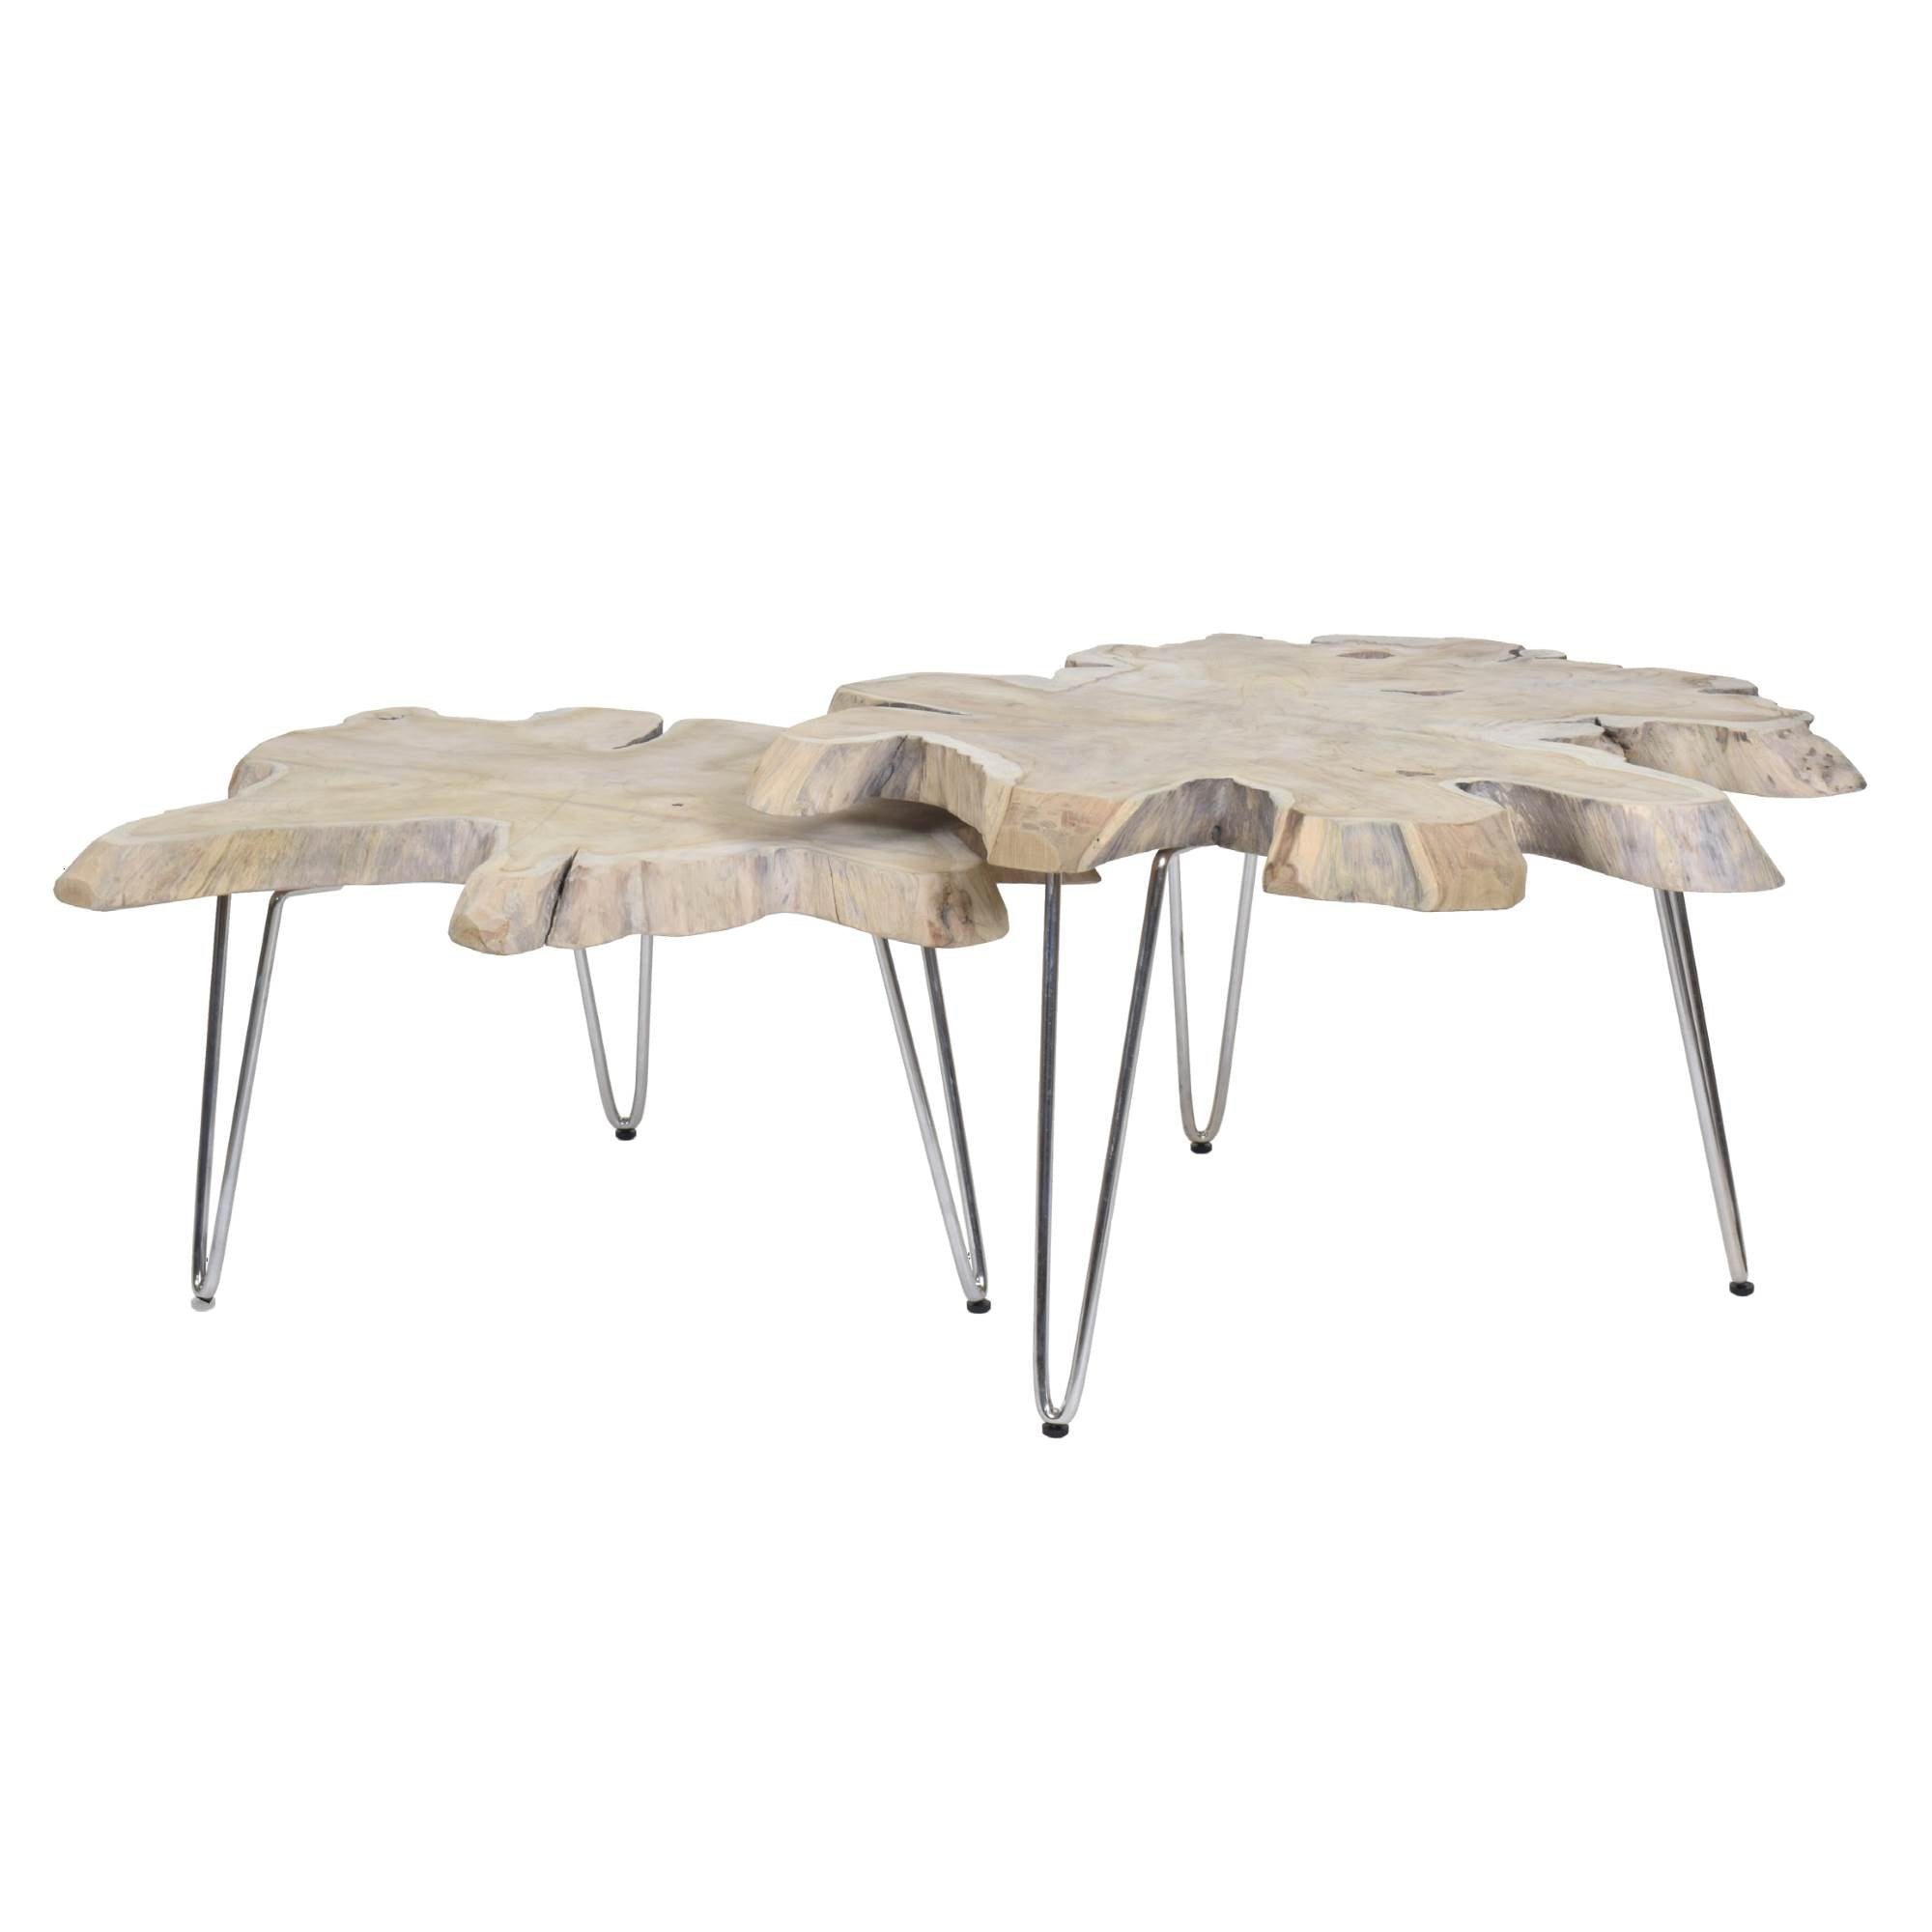 Teak Coffee Table - Beautiful Indoor & Outdoor Furniture ...